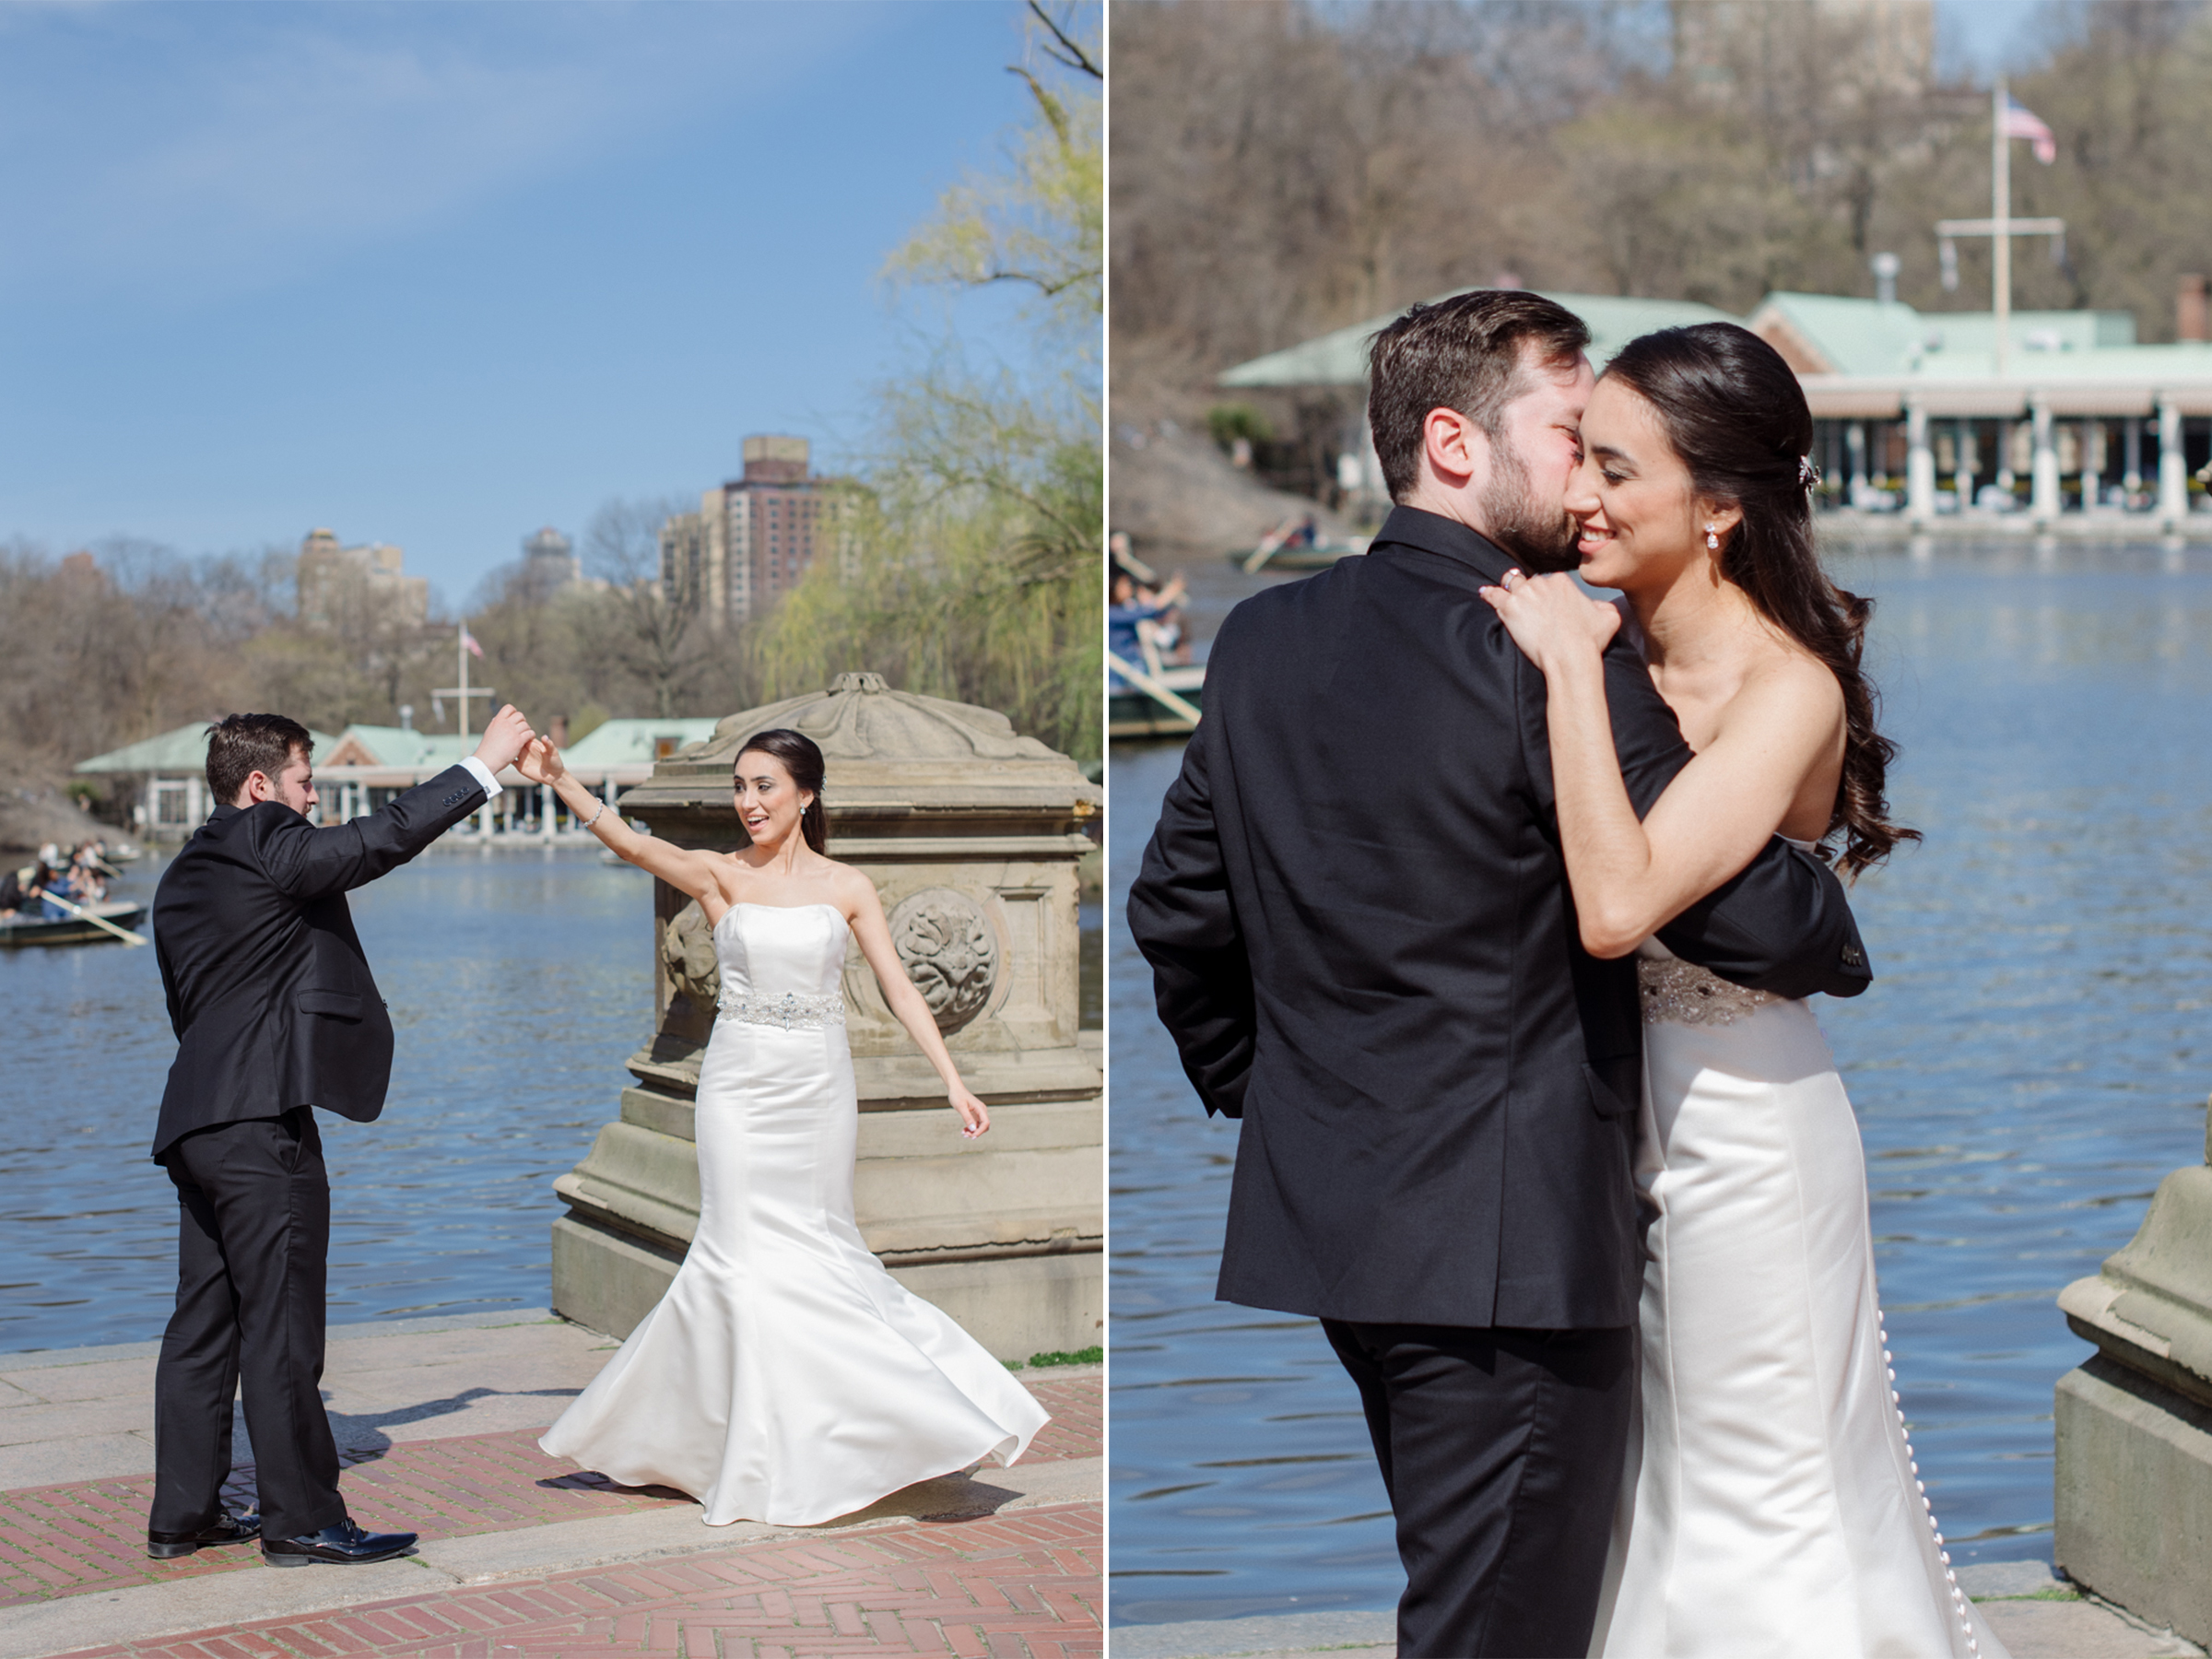 Anahi+David- Central Park Elopement Bethesda Fountain Twirling Dancing- New York City- Olivia Christina Photo.jpg